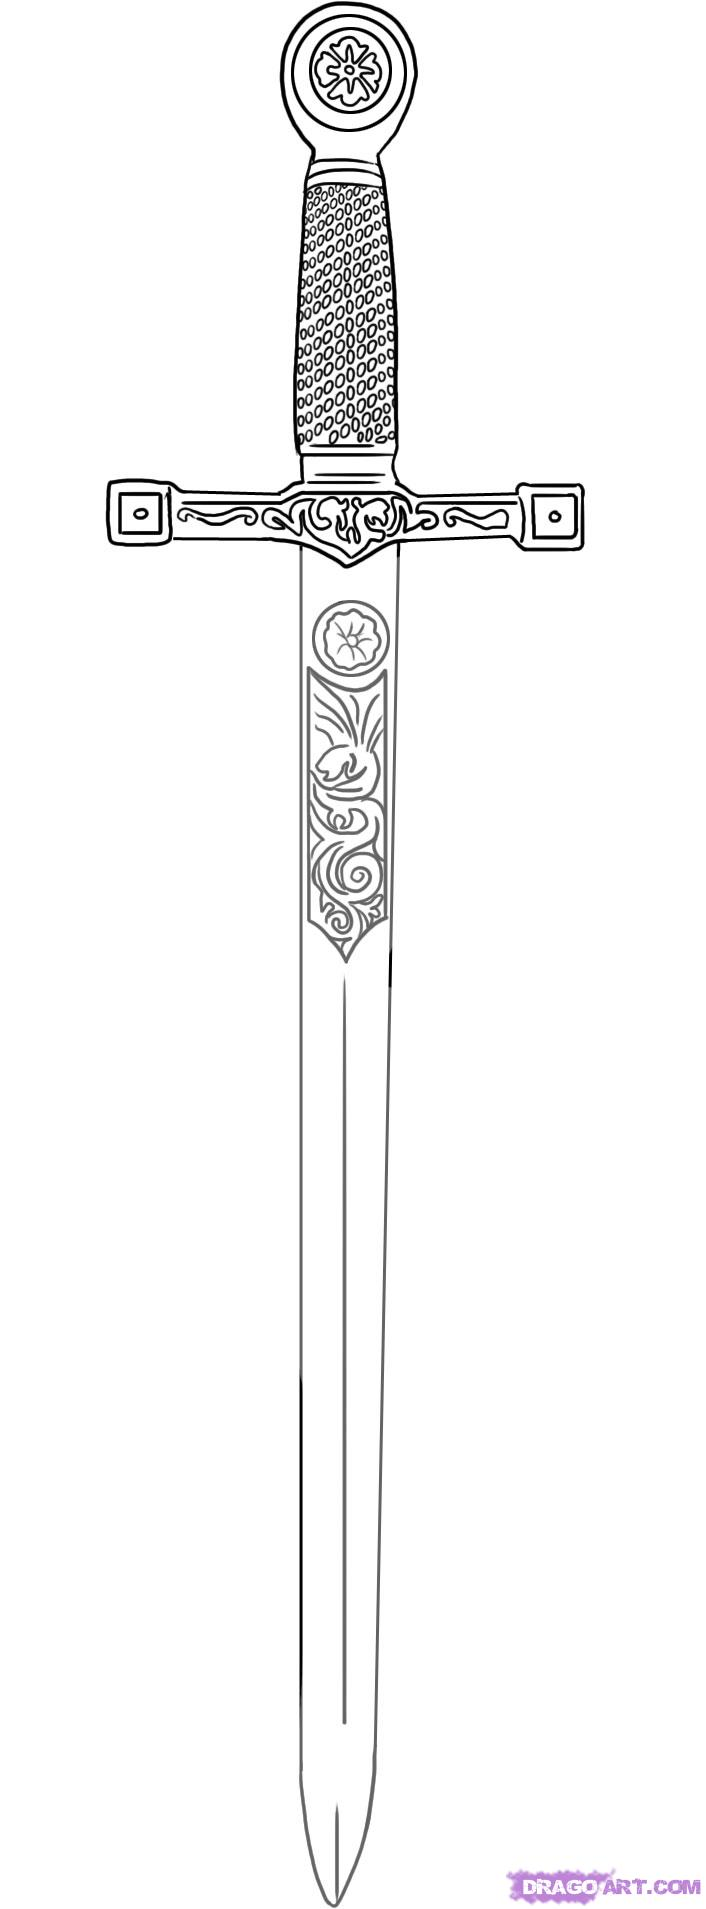 Excalibur Sword In The Stone Tattoo Stencil